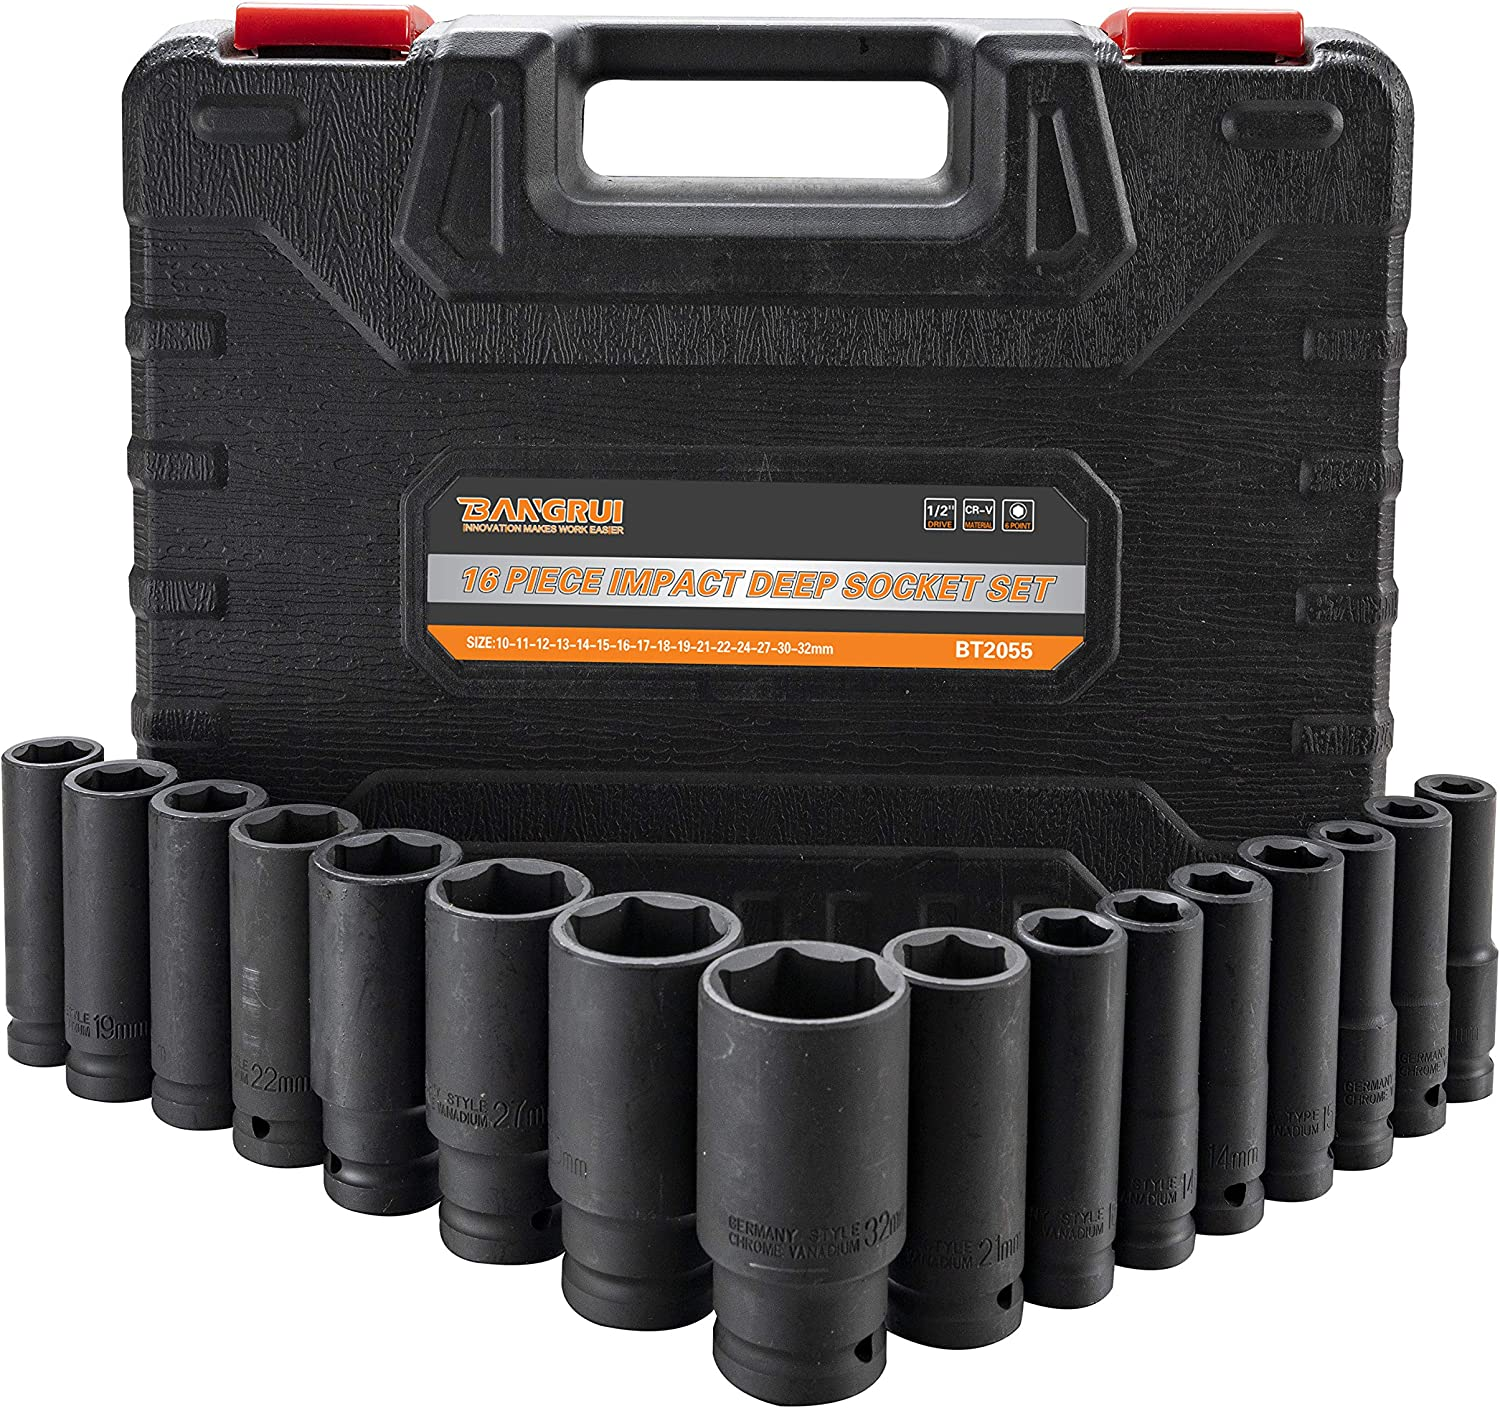 16PCS 1//2-inch Drive 6 Point Metric Impact Deep Socket Set 10MM-32MM